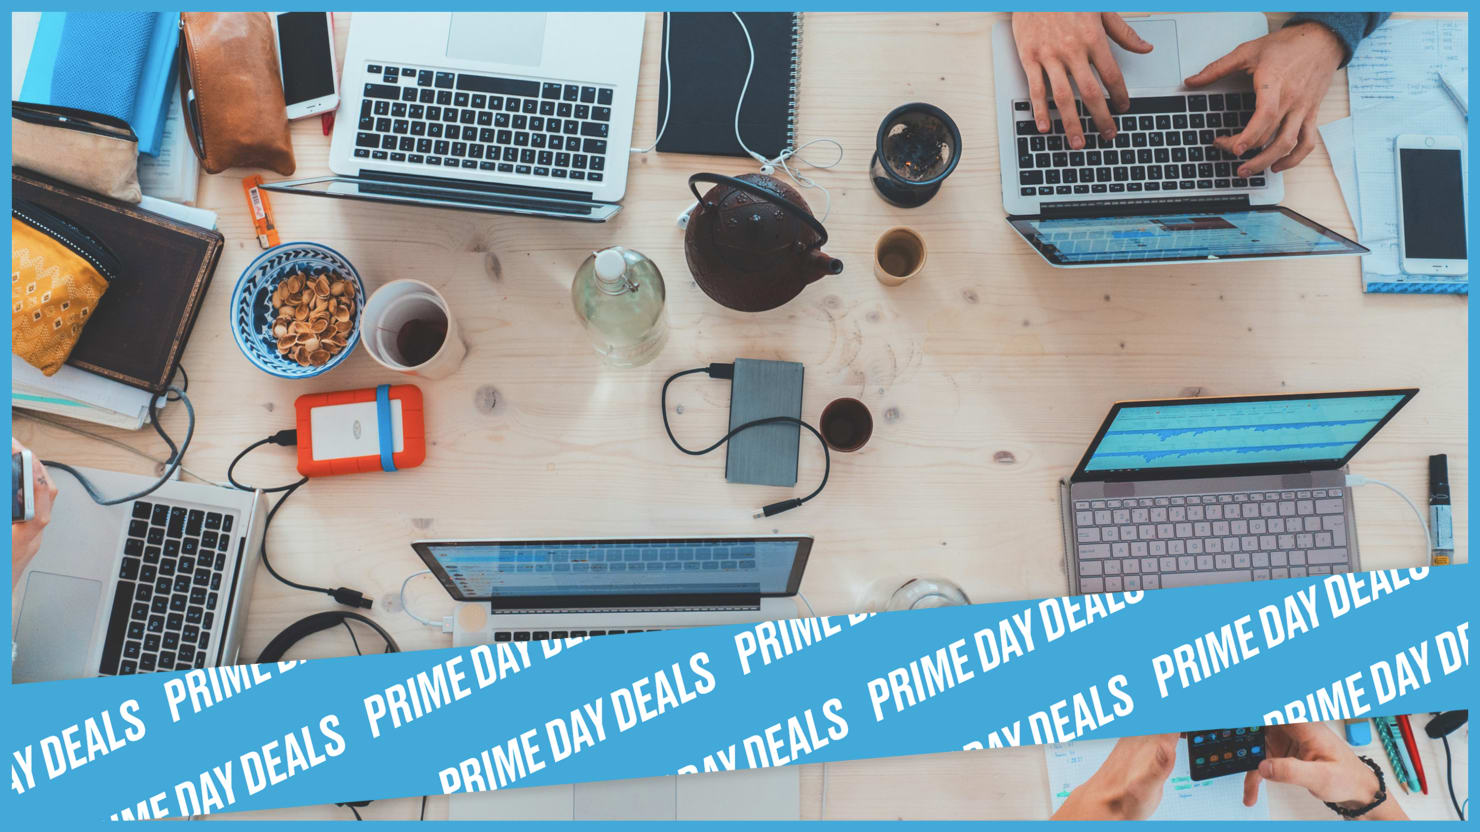 It's Raining Deals: Amazon Prime Day is Here!